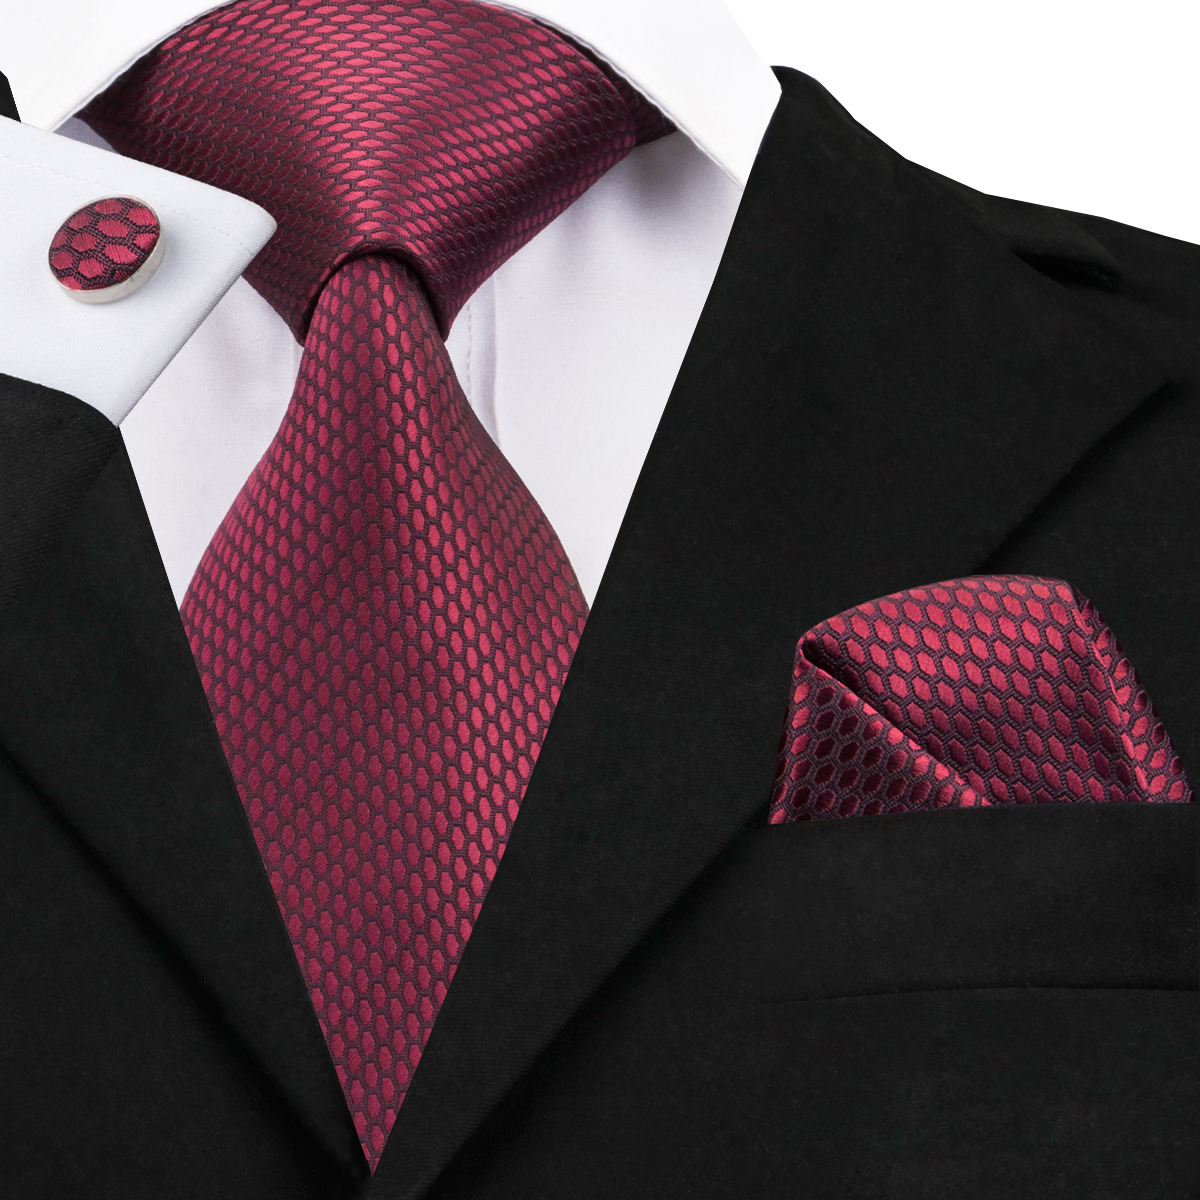 Hi-Tie Luxury Silk Men Tie Set Solid Designer Dark Red Ties For Men Classic Business Wedding Fashion Tie And Cufflinks SN-1464